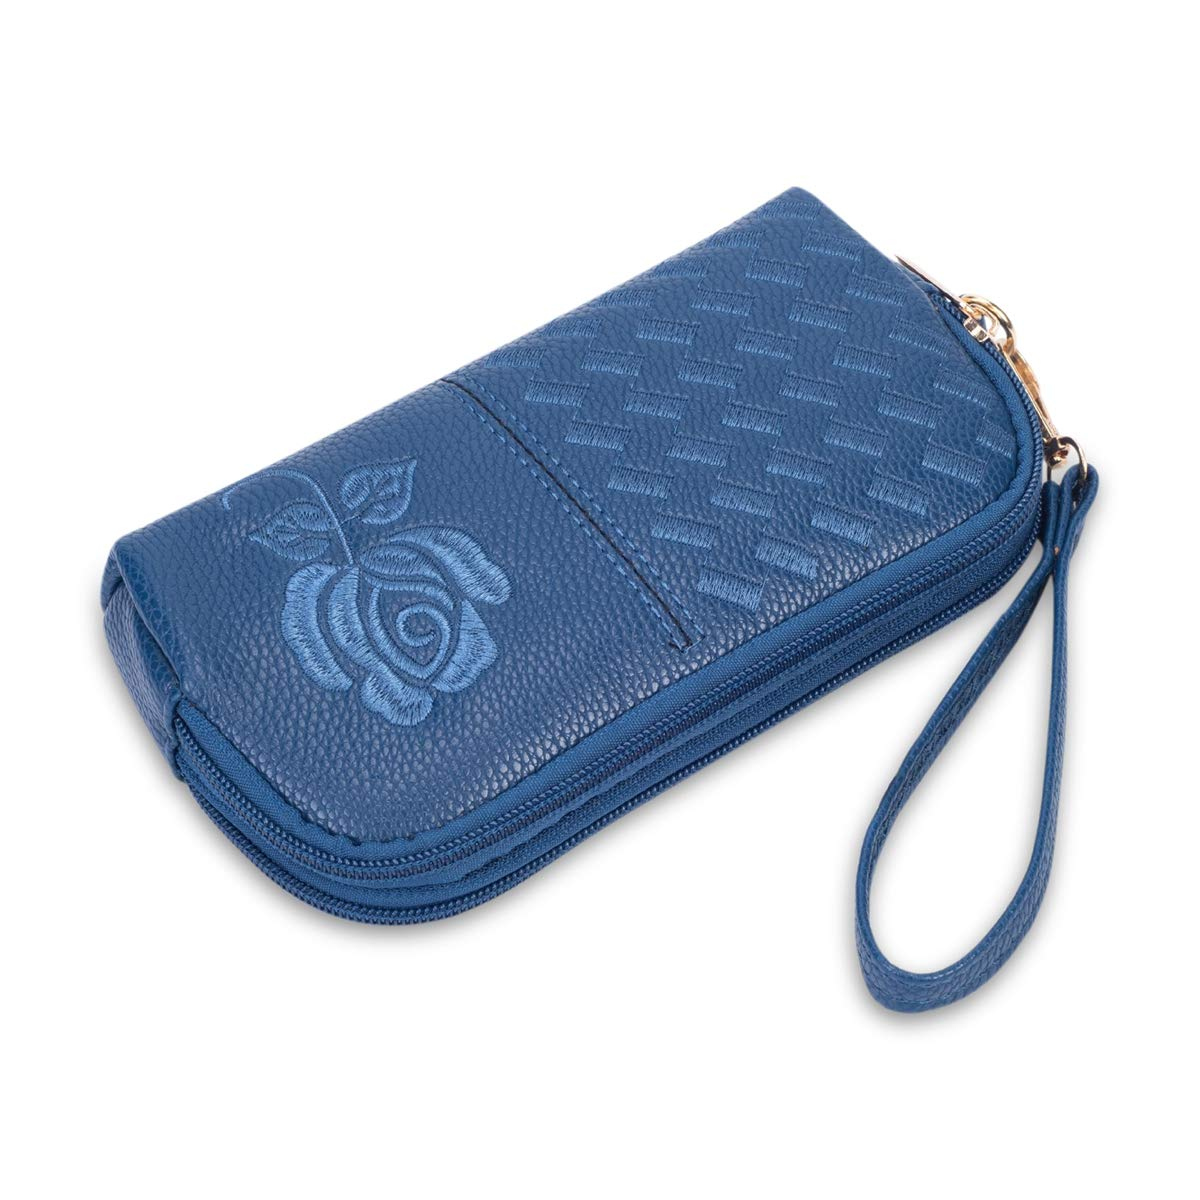 Wristlet Wallet with Strap for Women, Leather Wristlets Phone Purse Clutch for iphone (Wristlet blue) by JZE (Image #6)